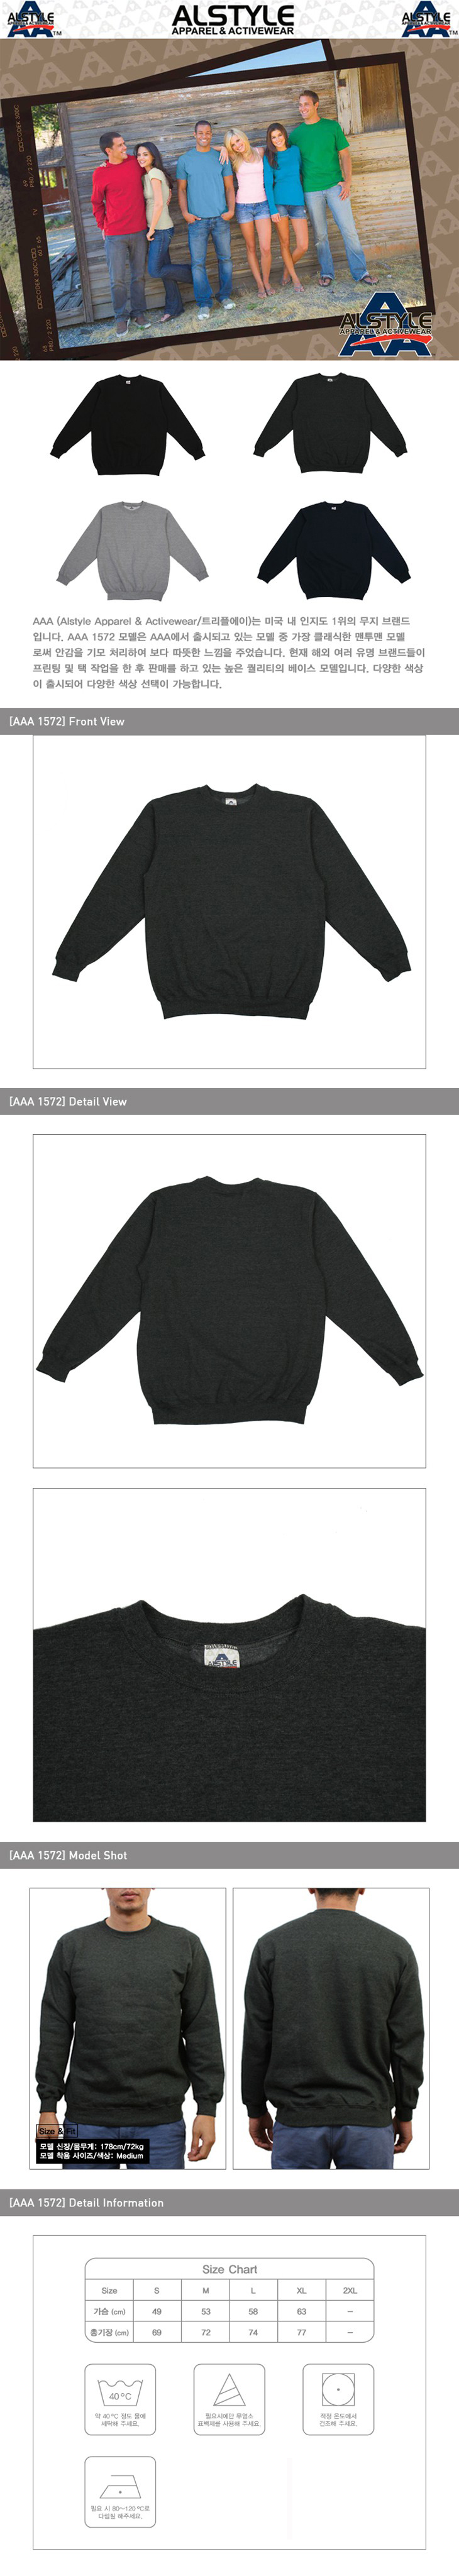 1572 Adult Sweatshirt (Charcoal Heather)